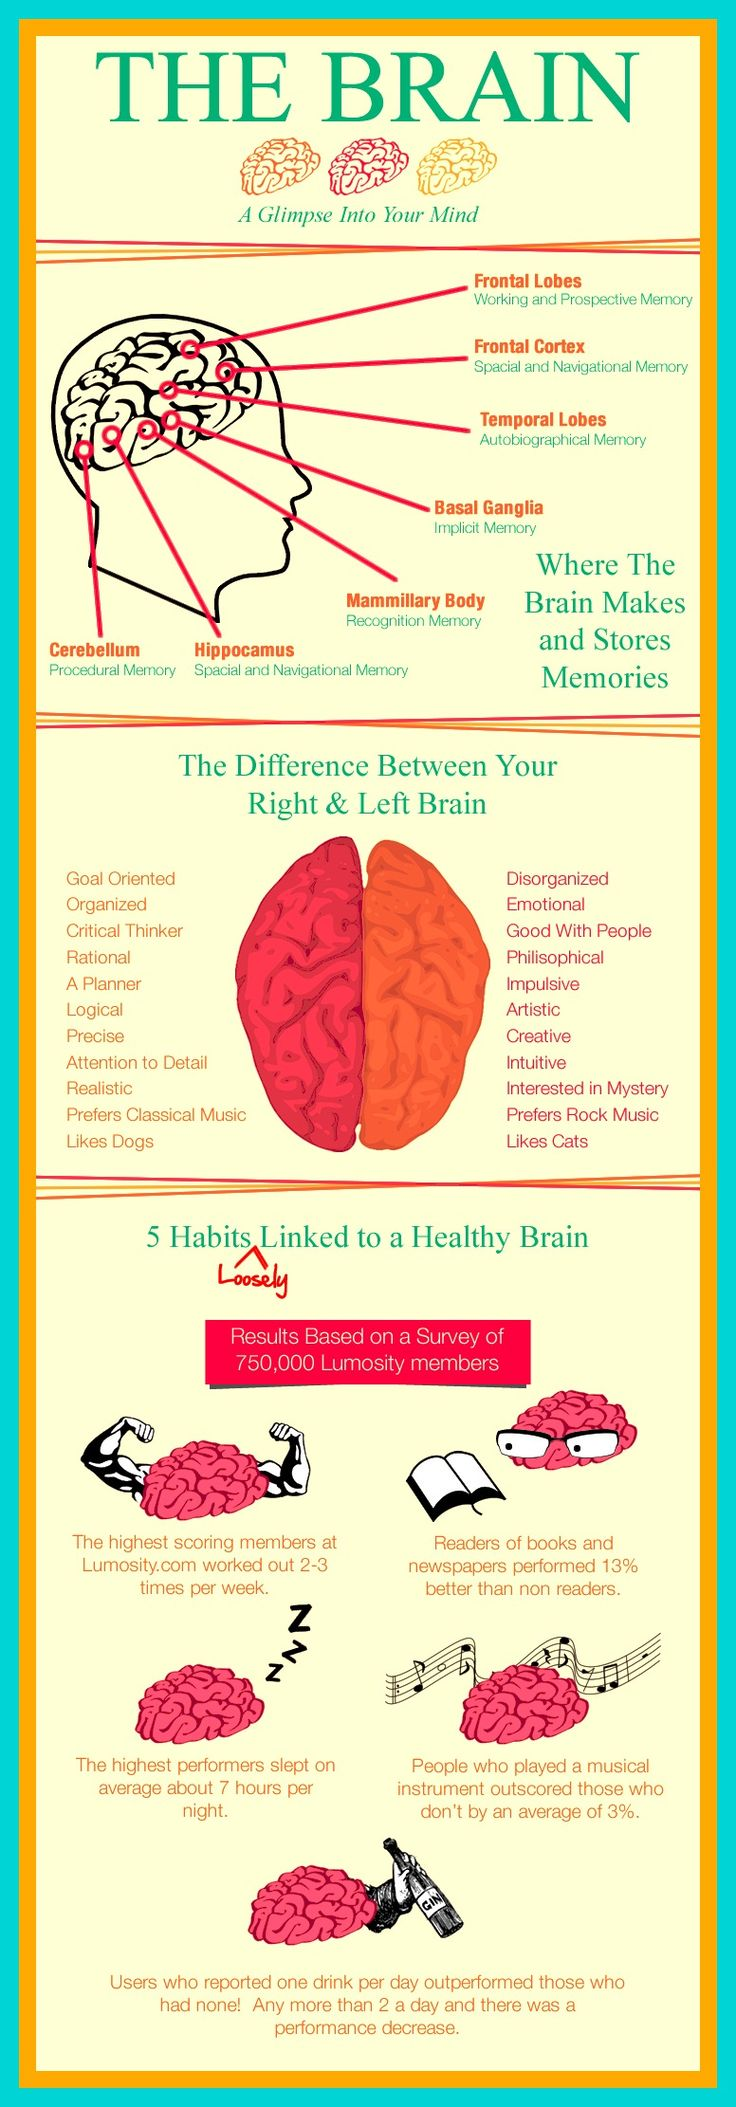 the differences between the right and left hemisphere The female brain appears to have increased connection between neurons in the  right and left hemispheres of the brain, and males seem to  8 to 22 years old  and found distinct differences in the brains of male versus female.